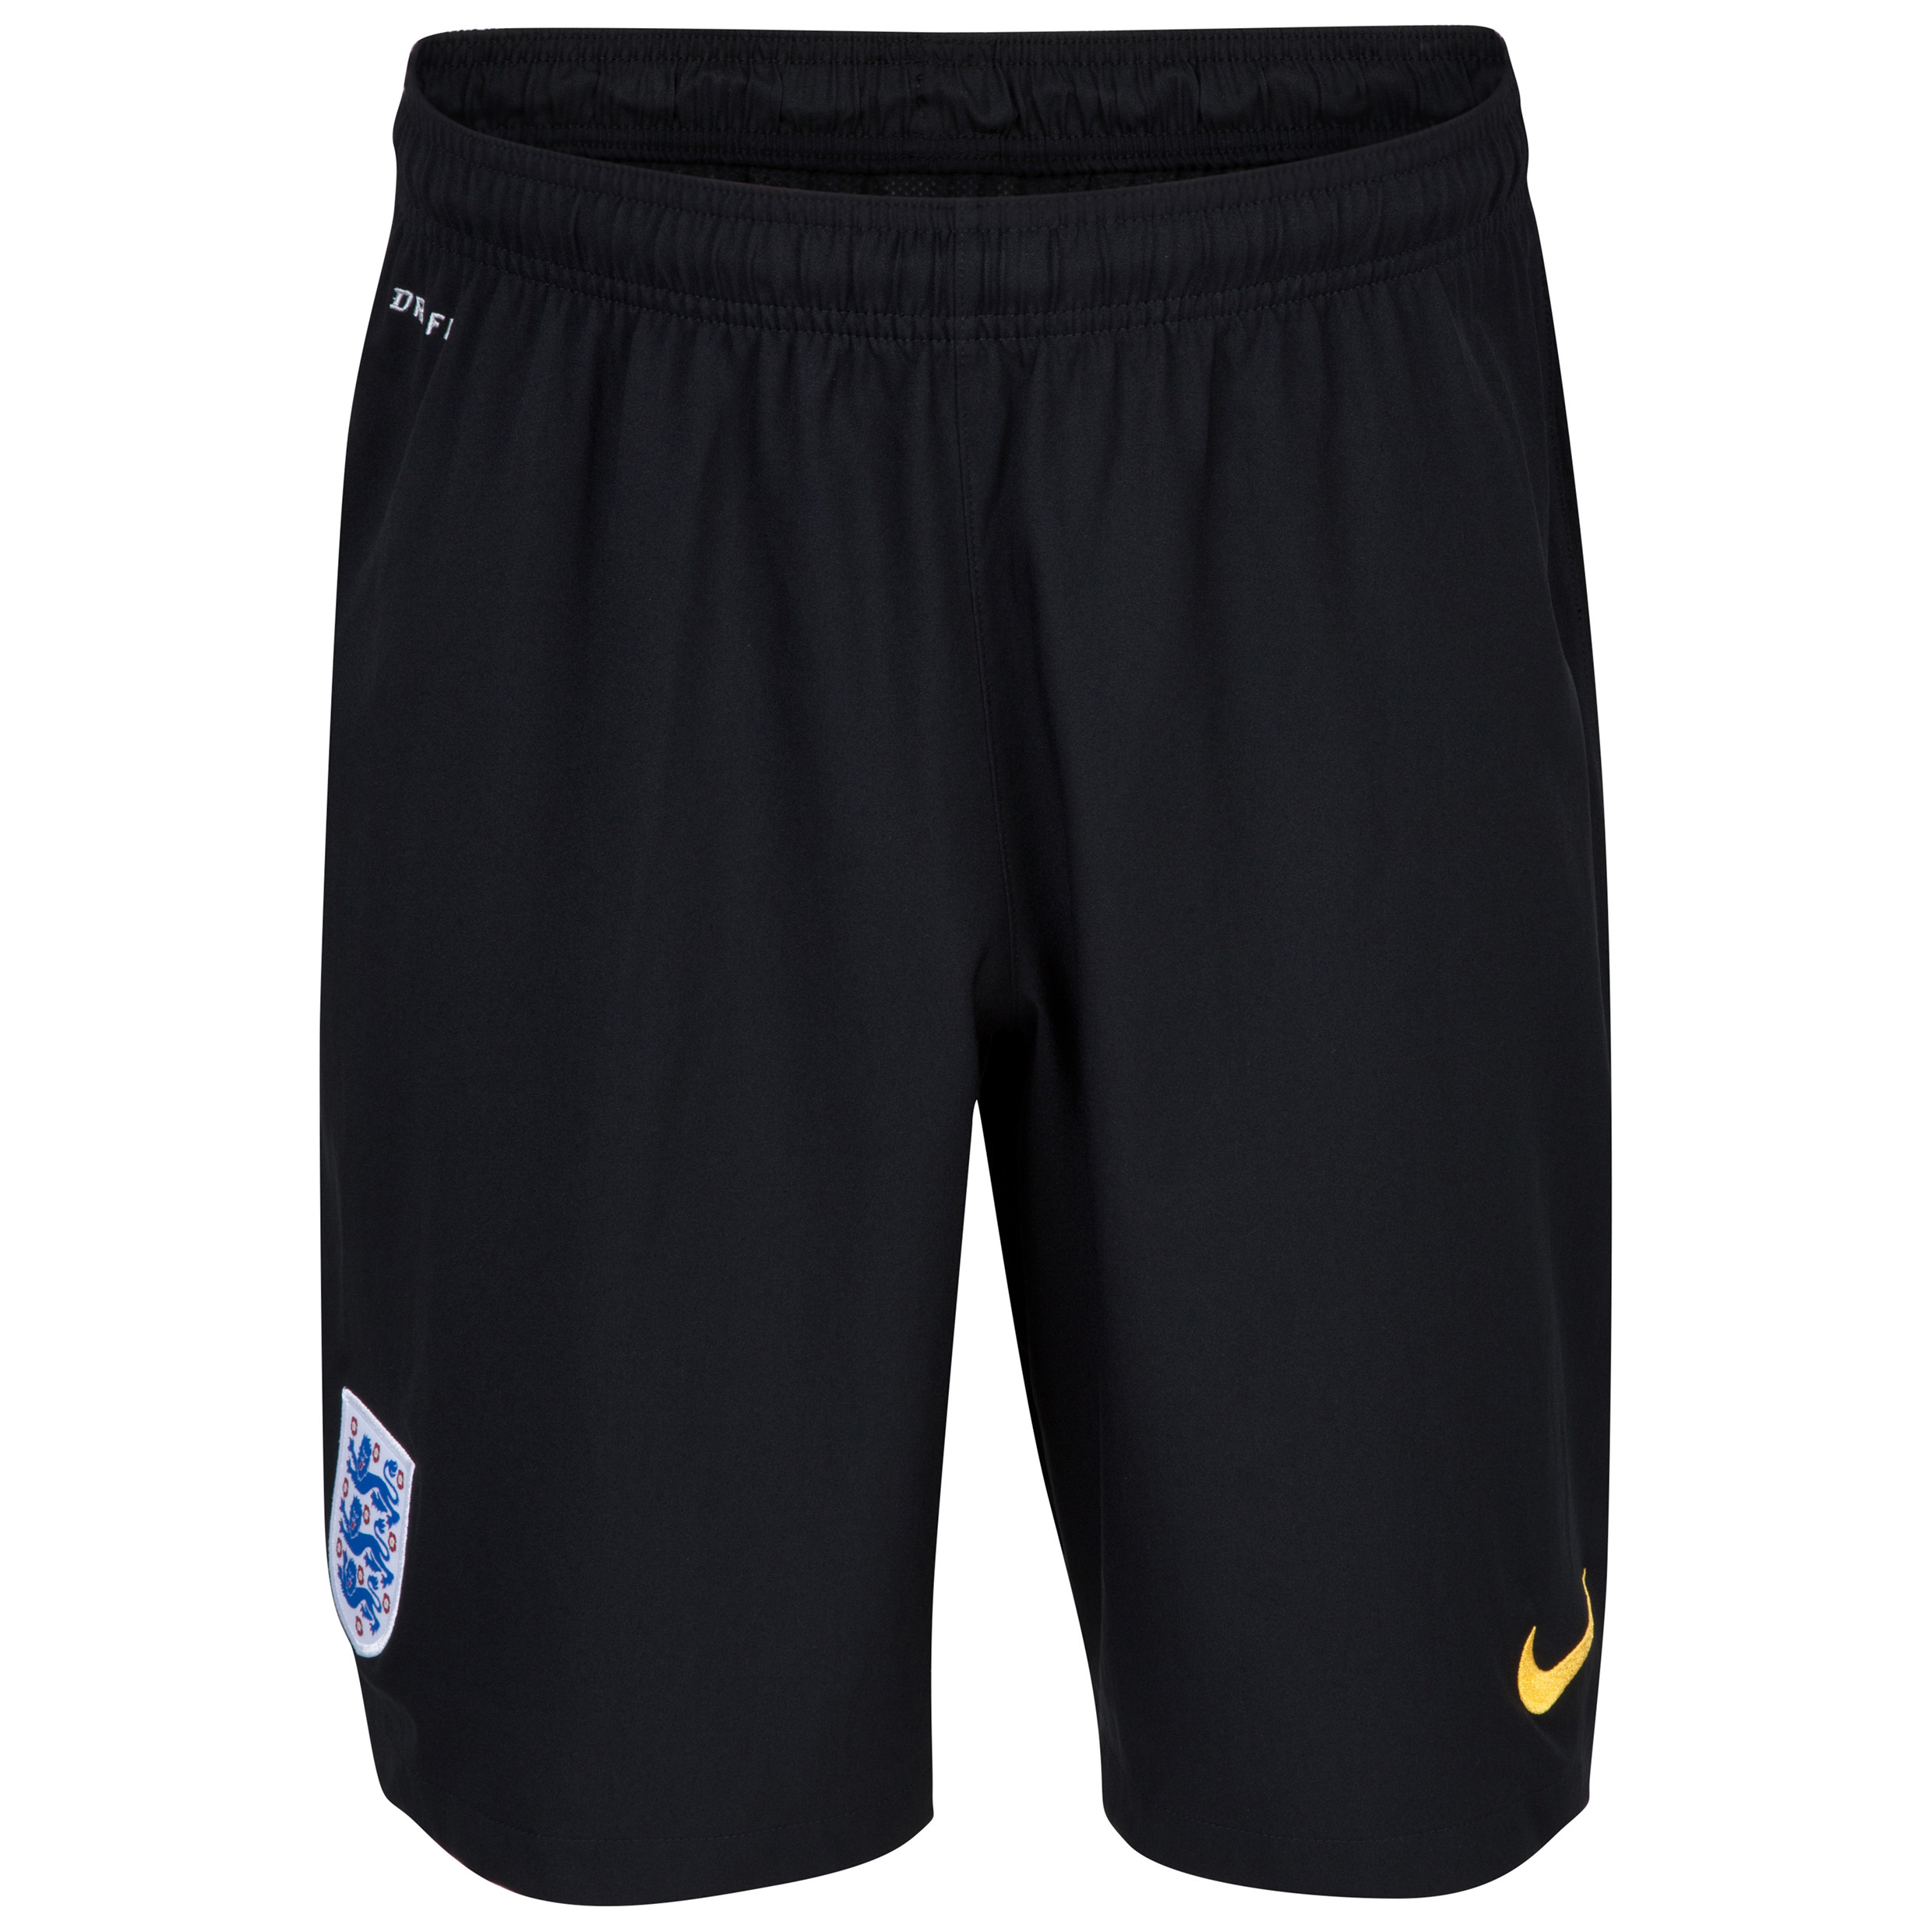 England Home Goalkeeper Short 2014/15 Black